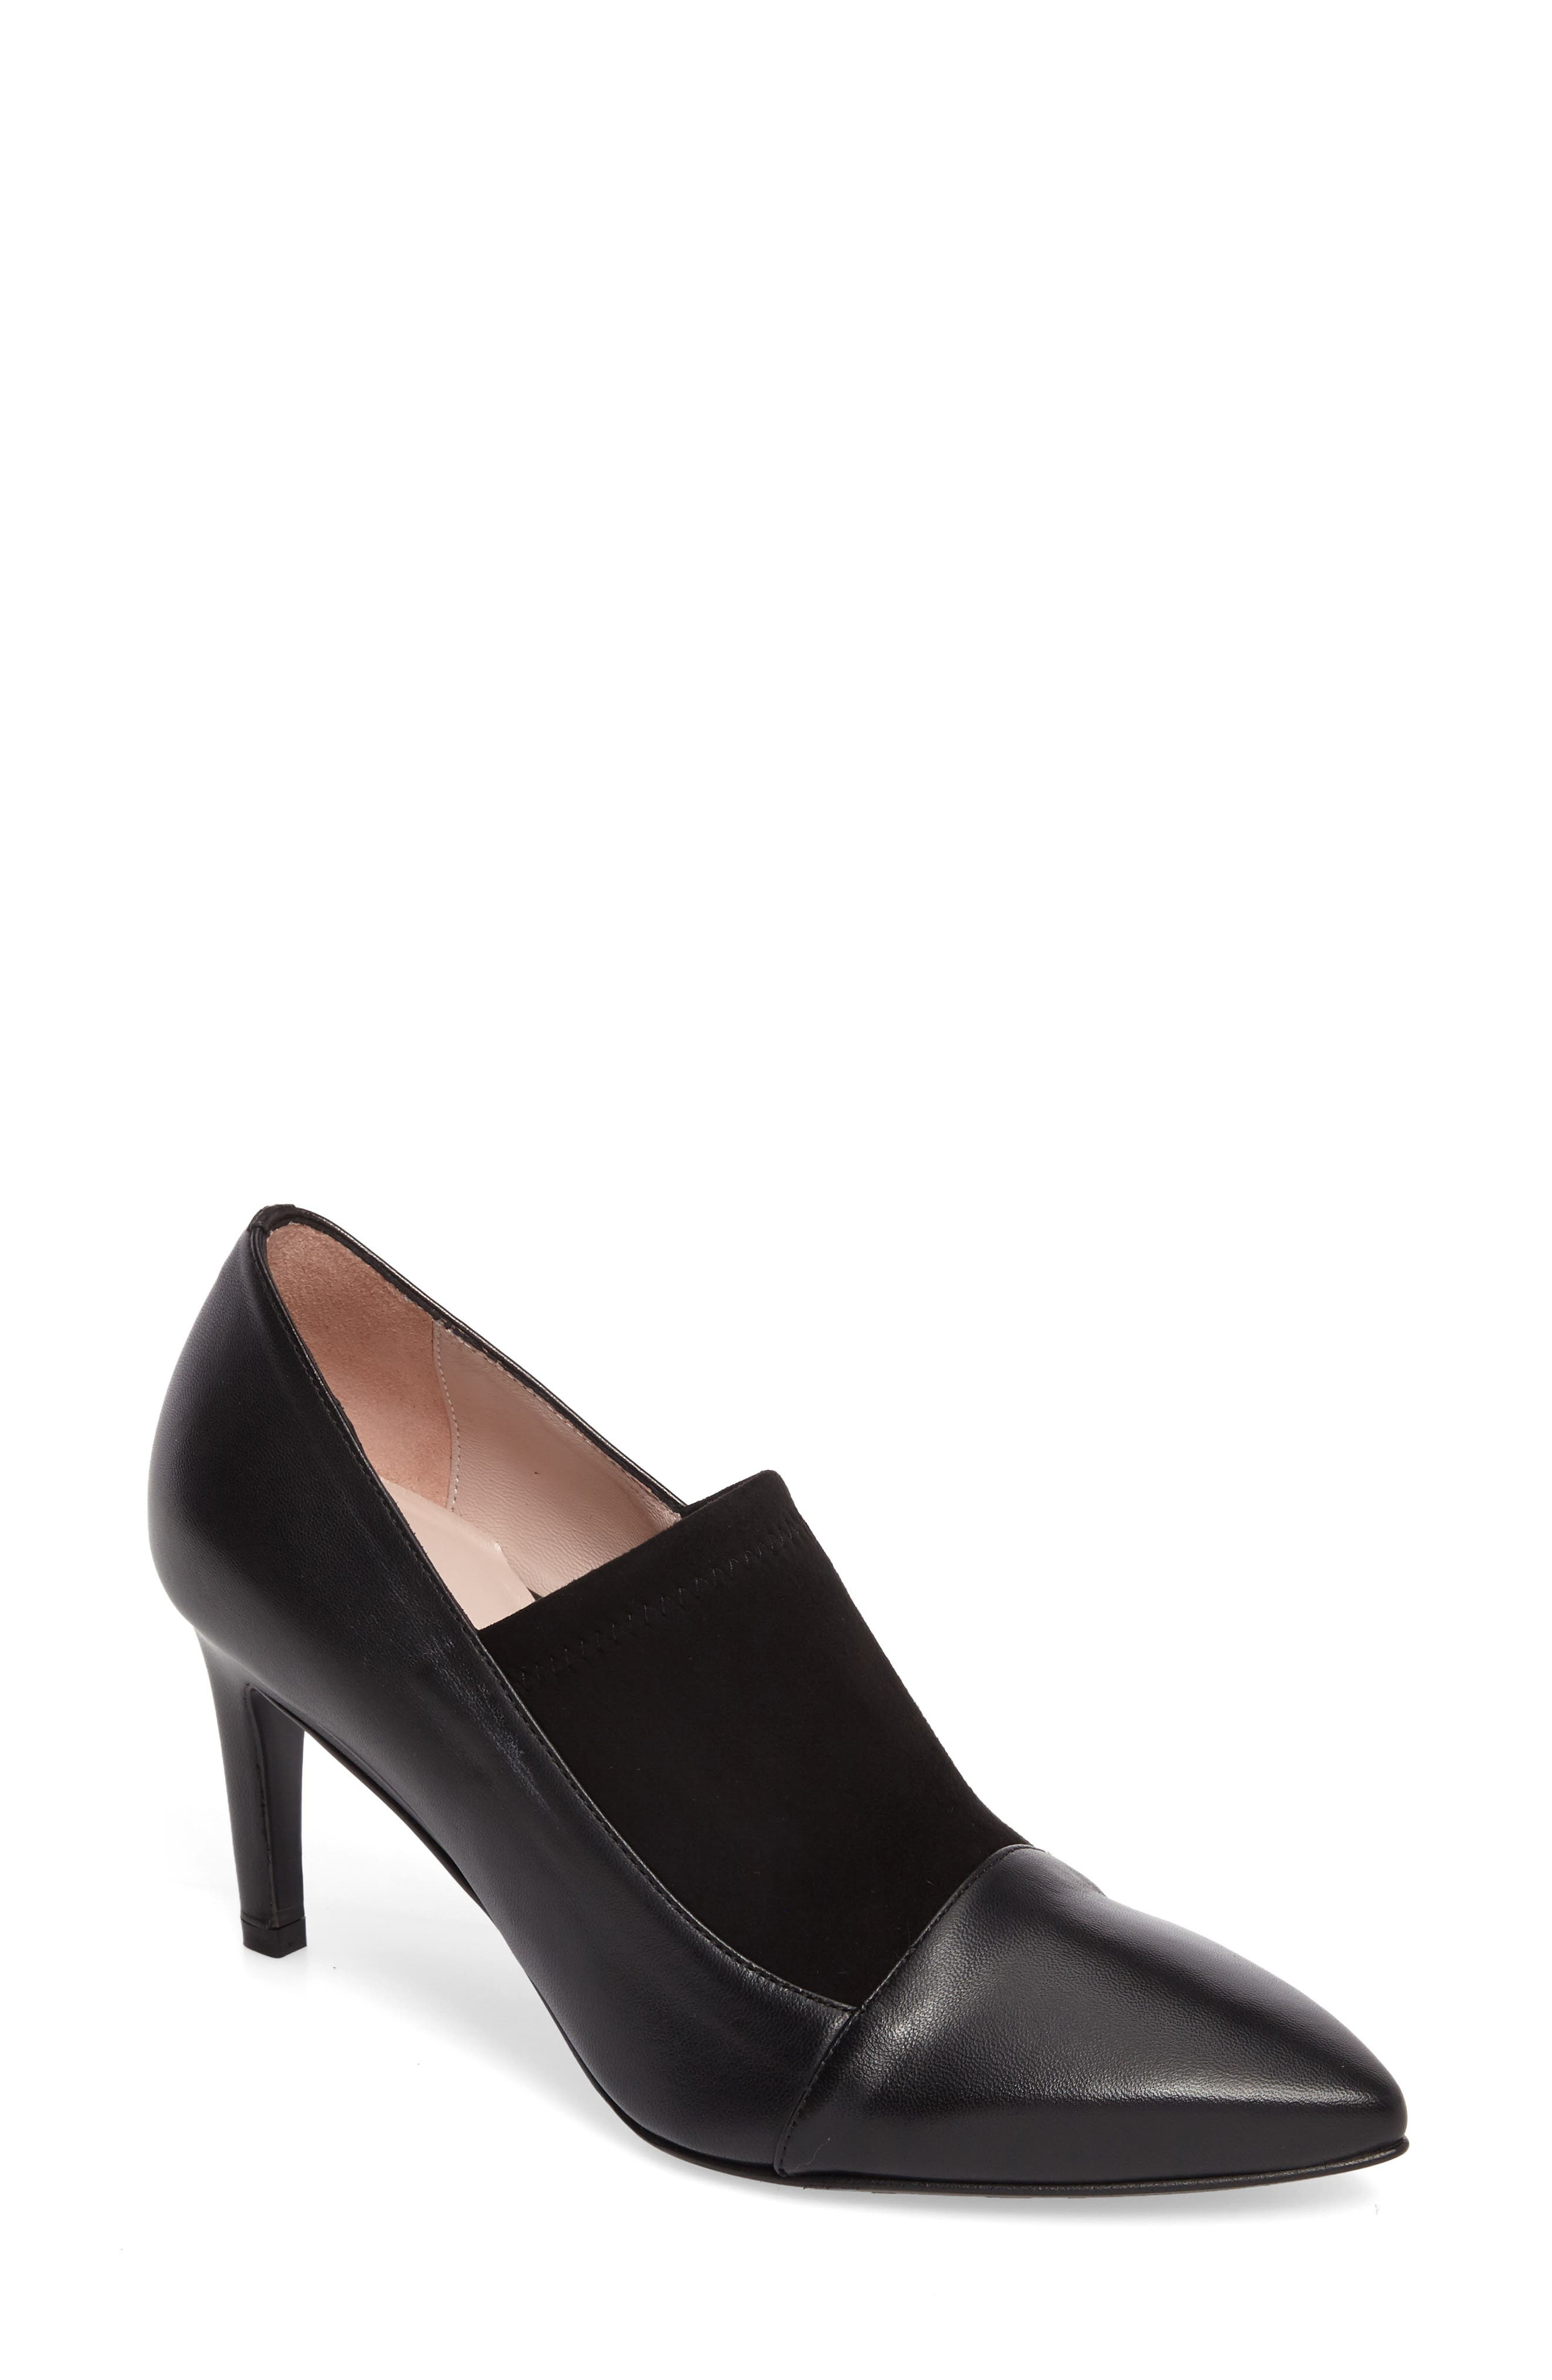 Ghita Pointy Toe Pump,                         Main,                         color, 004